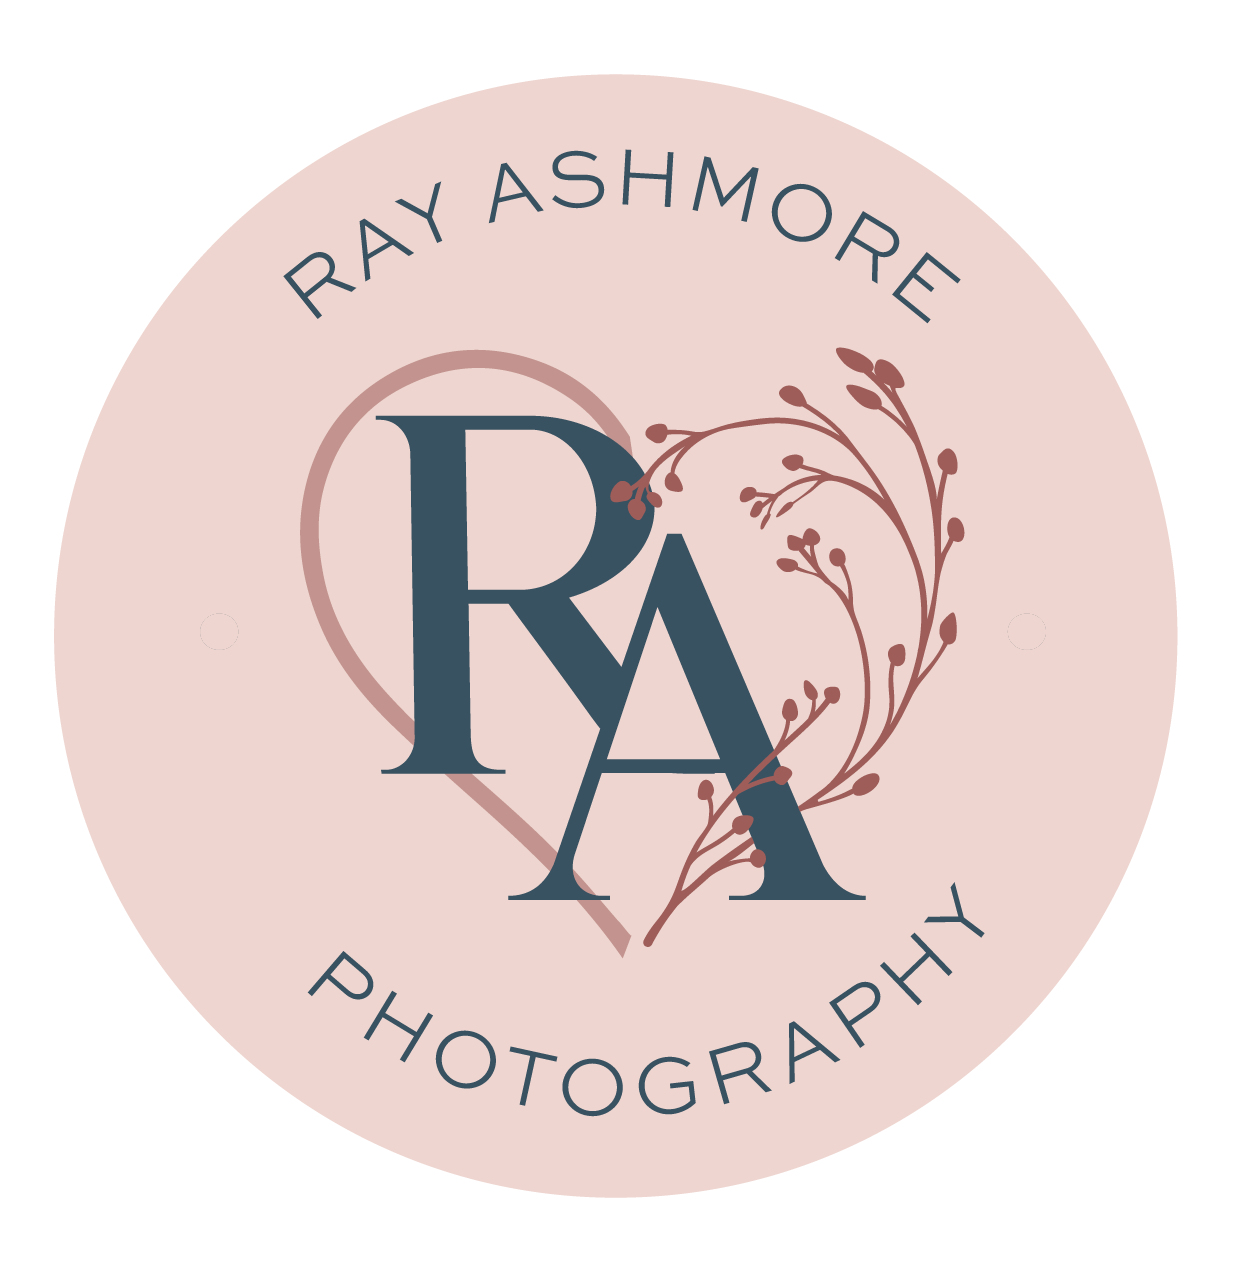 Ray Ashmore Photography